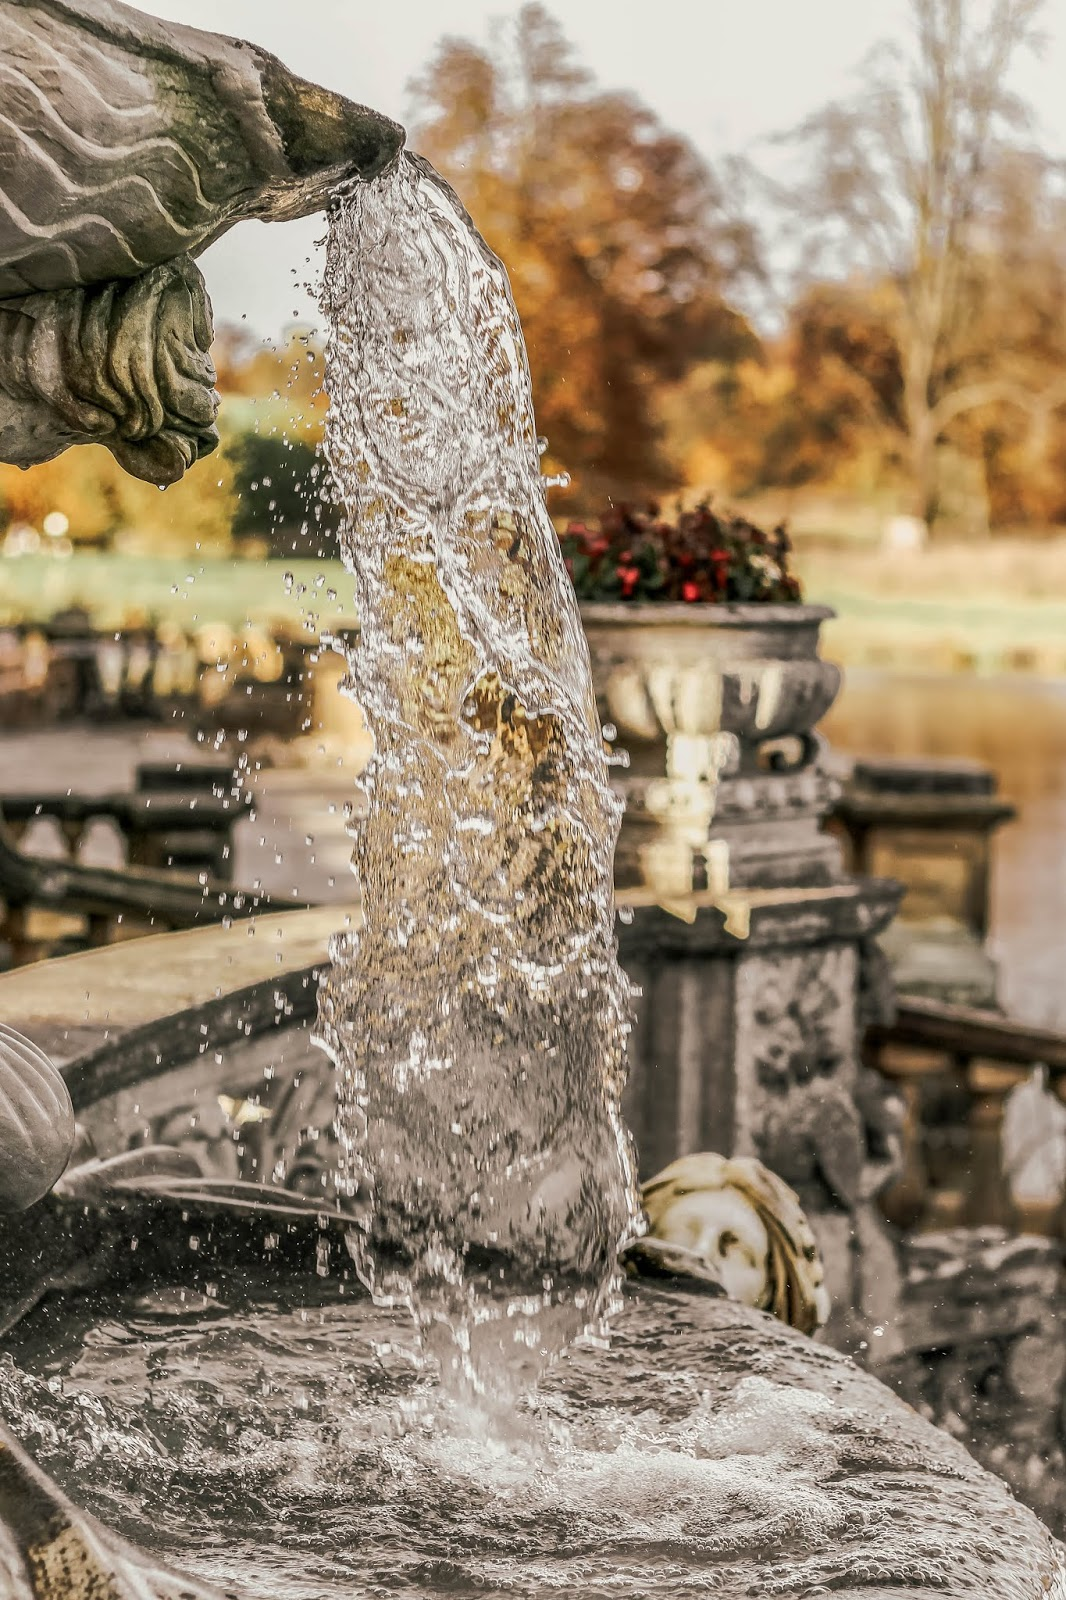 water pouring from a fountain in winter